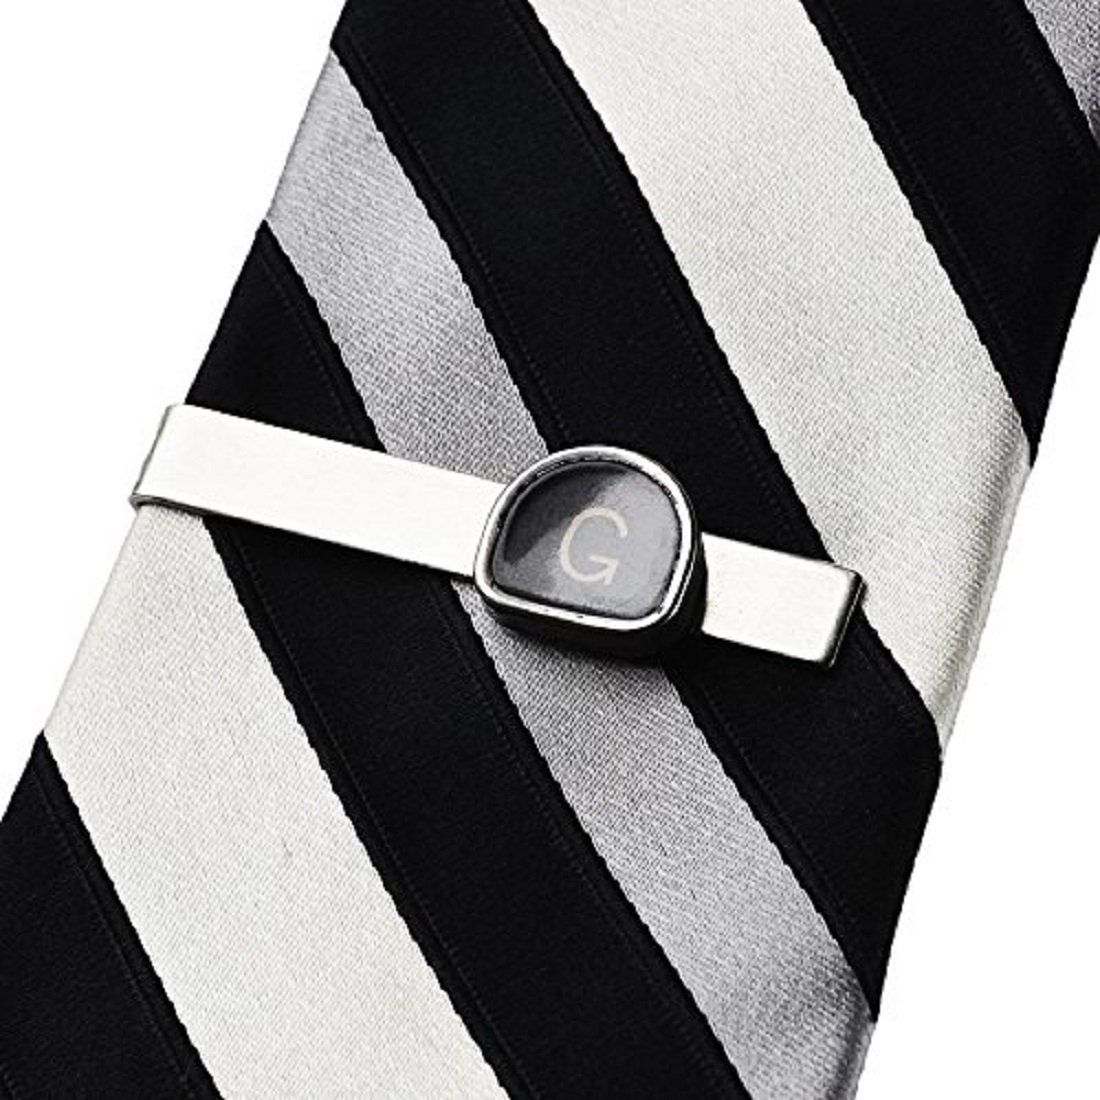 Quality Handcrafts Guaranteed Customizable Vintage Typewriter Key Tie Clip